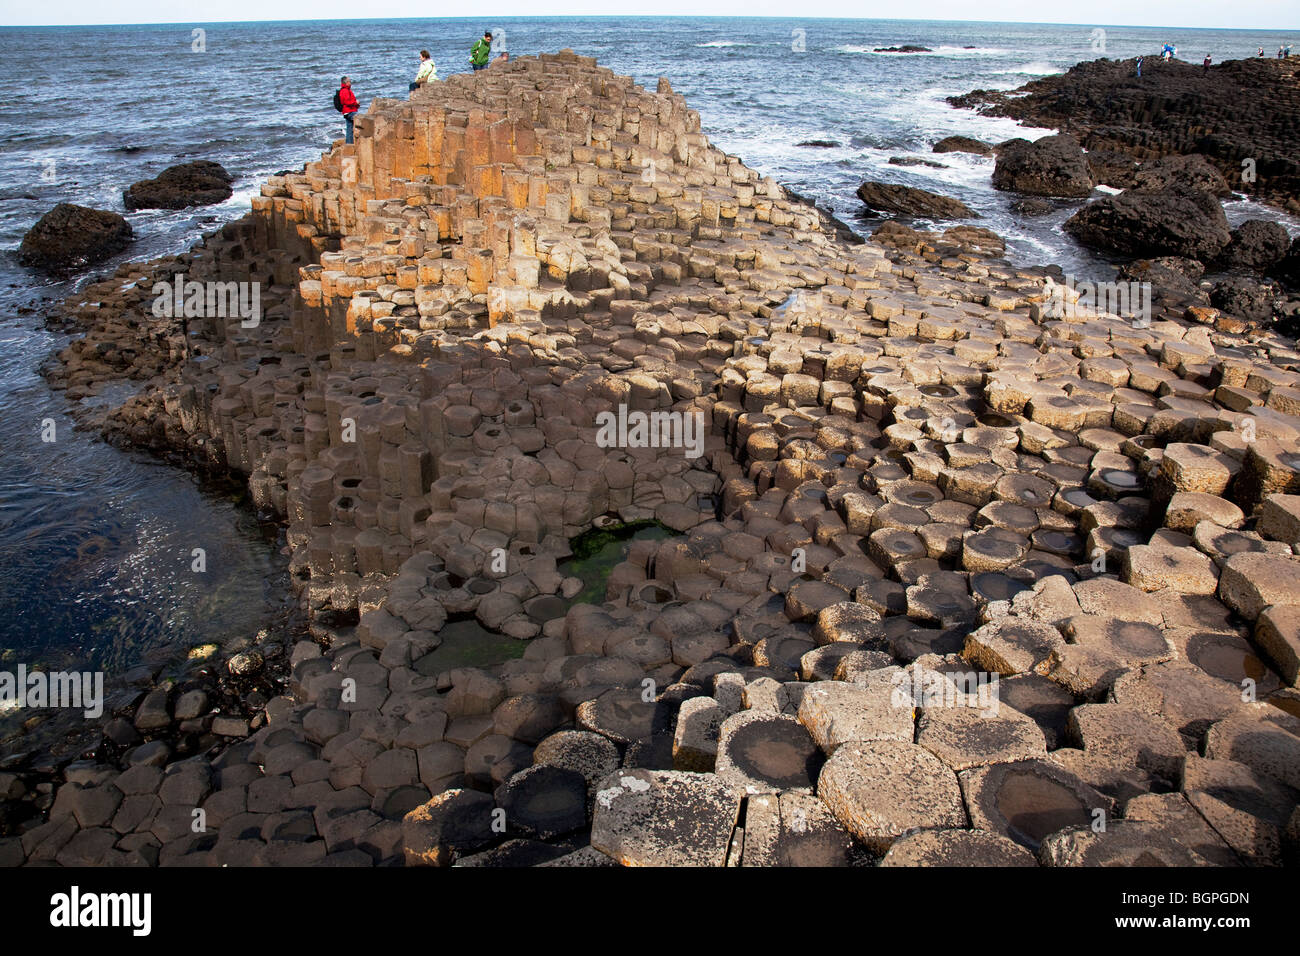 The Island at the Giant's Causeway Antrim Northern Ireland a natural phenomena and a world heritage site. - Stock Image